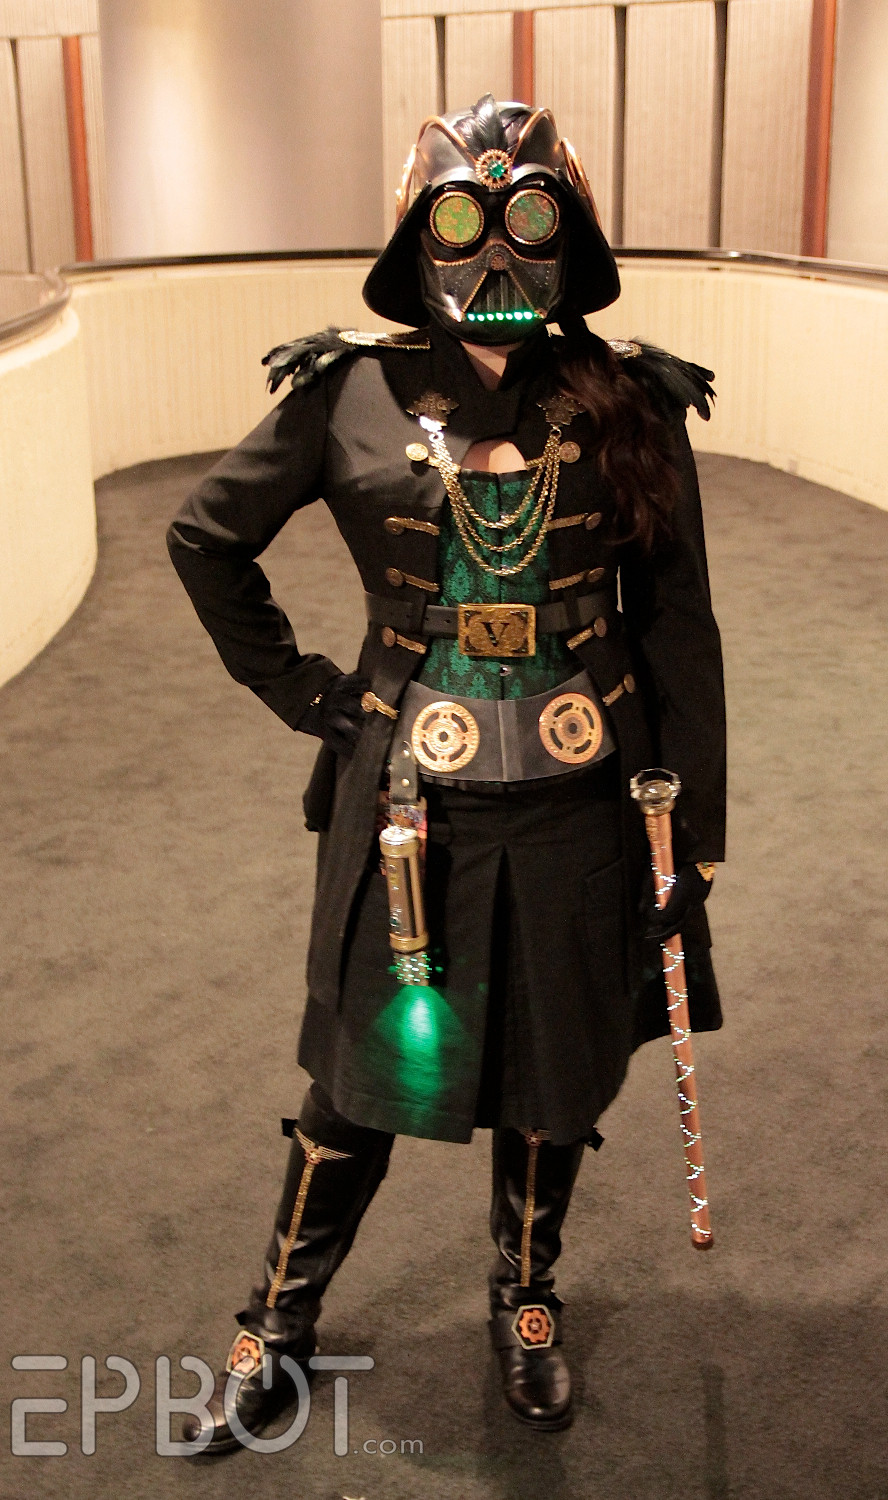 Best ideas about DIY Steampunk Costume . Save or Pin EPBOT DIY Light Up Copper Cane Now.